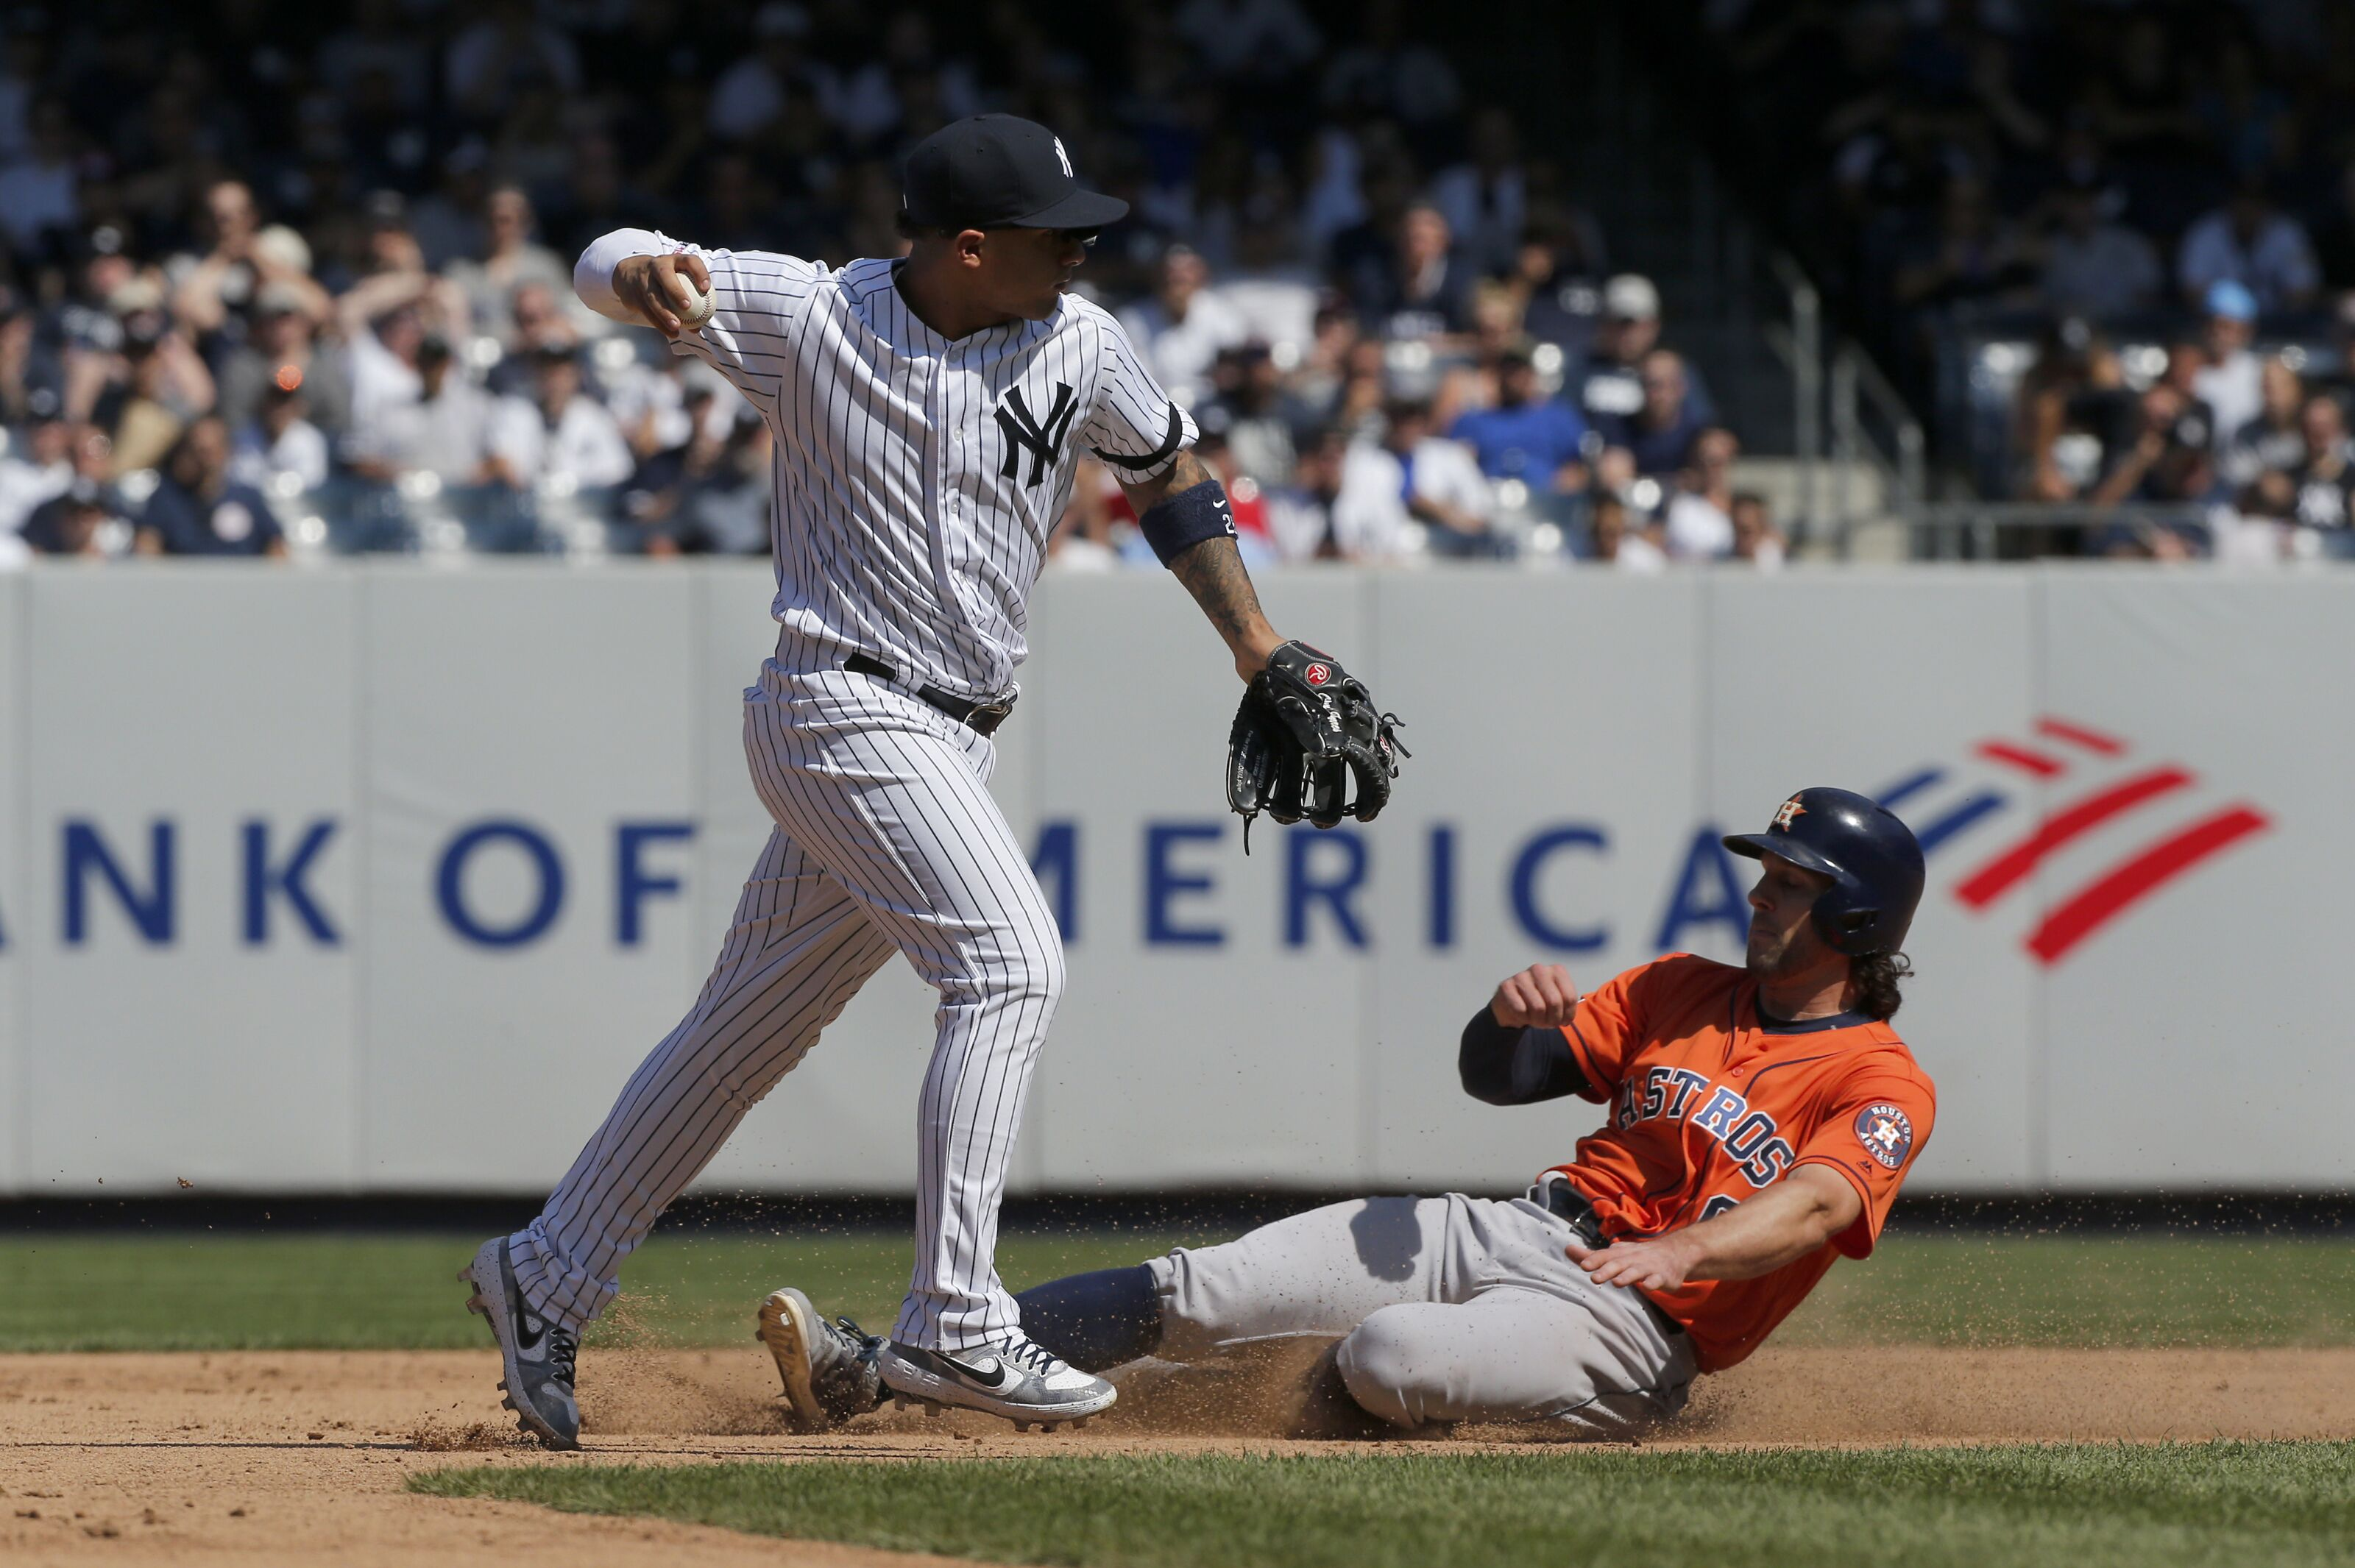 New York Yankees: Taking a look at the Astros pitching for a potential ALCS matchup